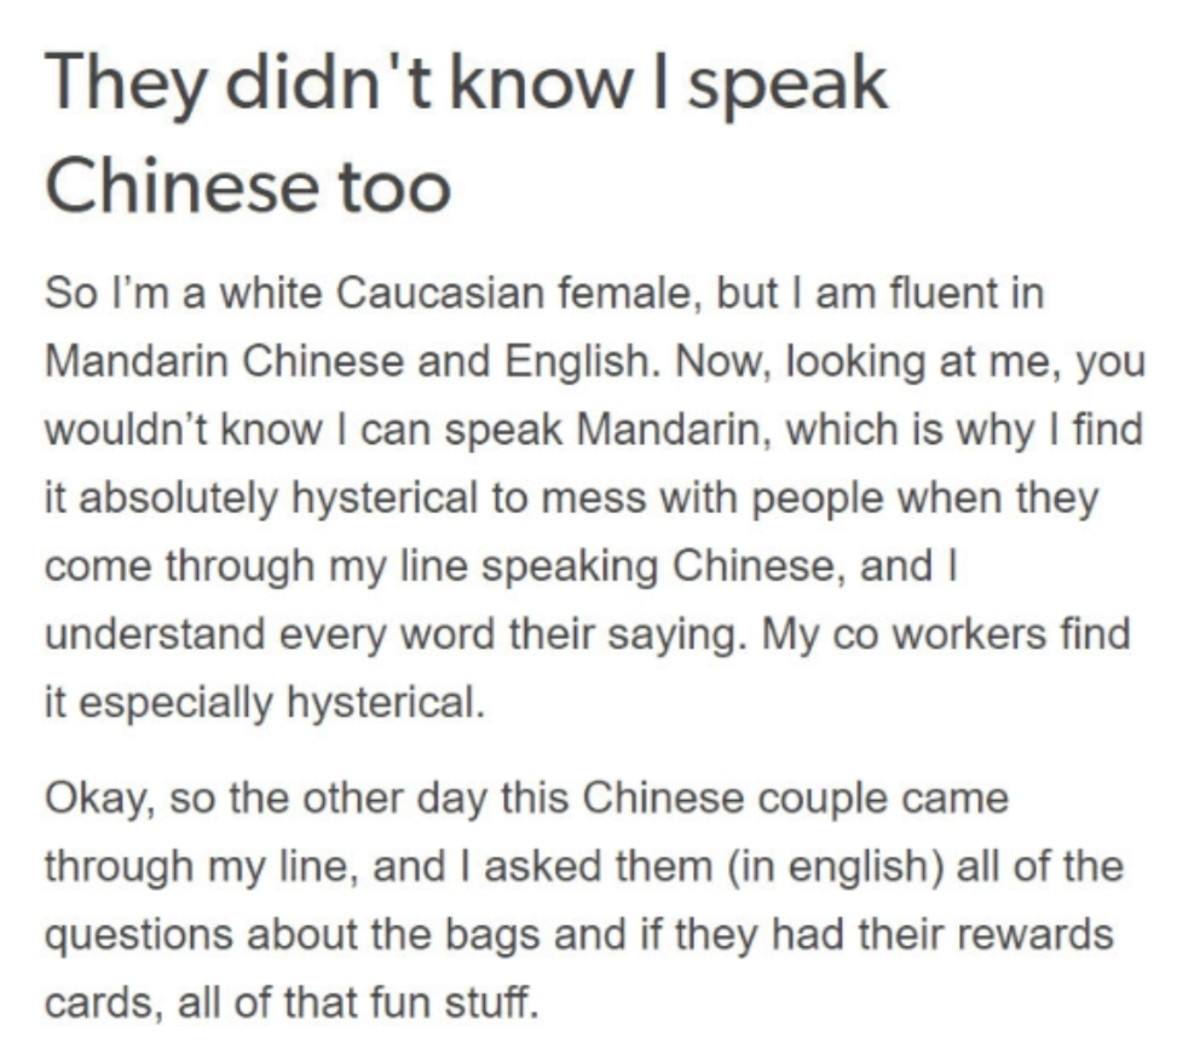 Ni Hao. .. After they walked out the door the manager and co worker and her.. Laughed? So did she tell then what happen or.. do they all speak mandarin? weird.